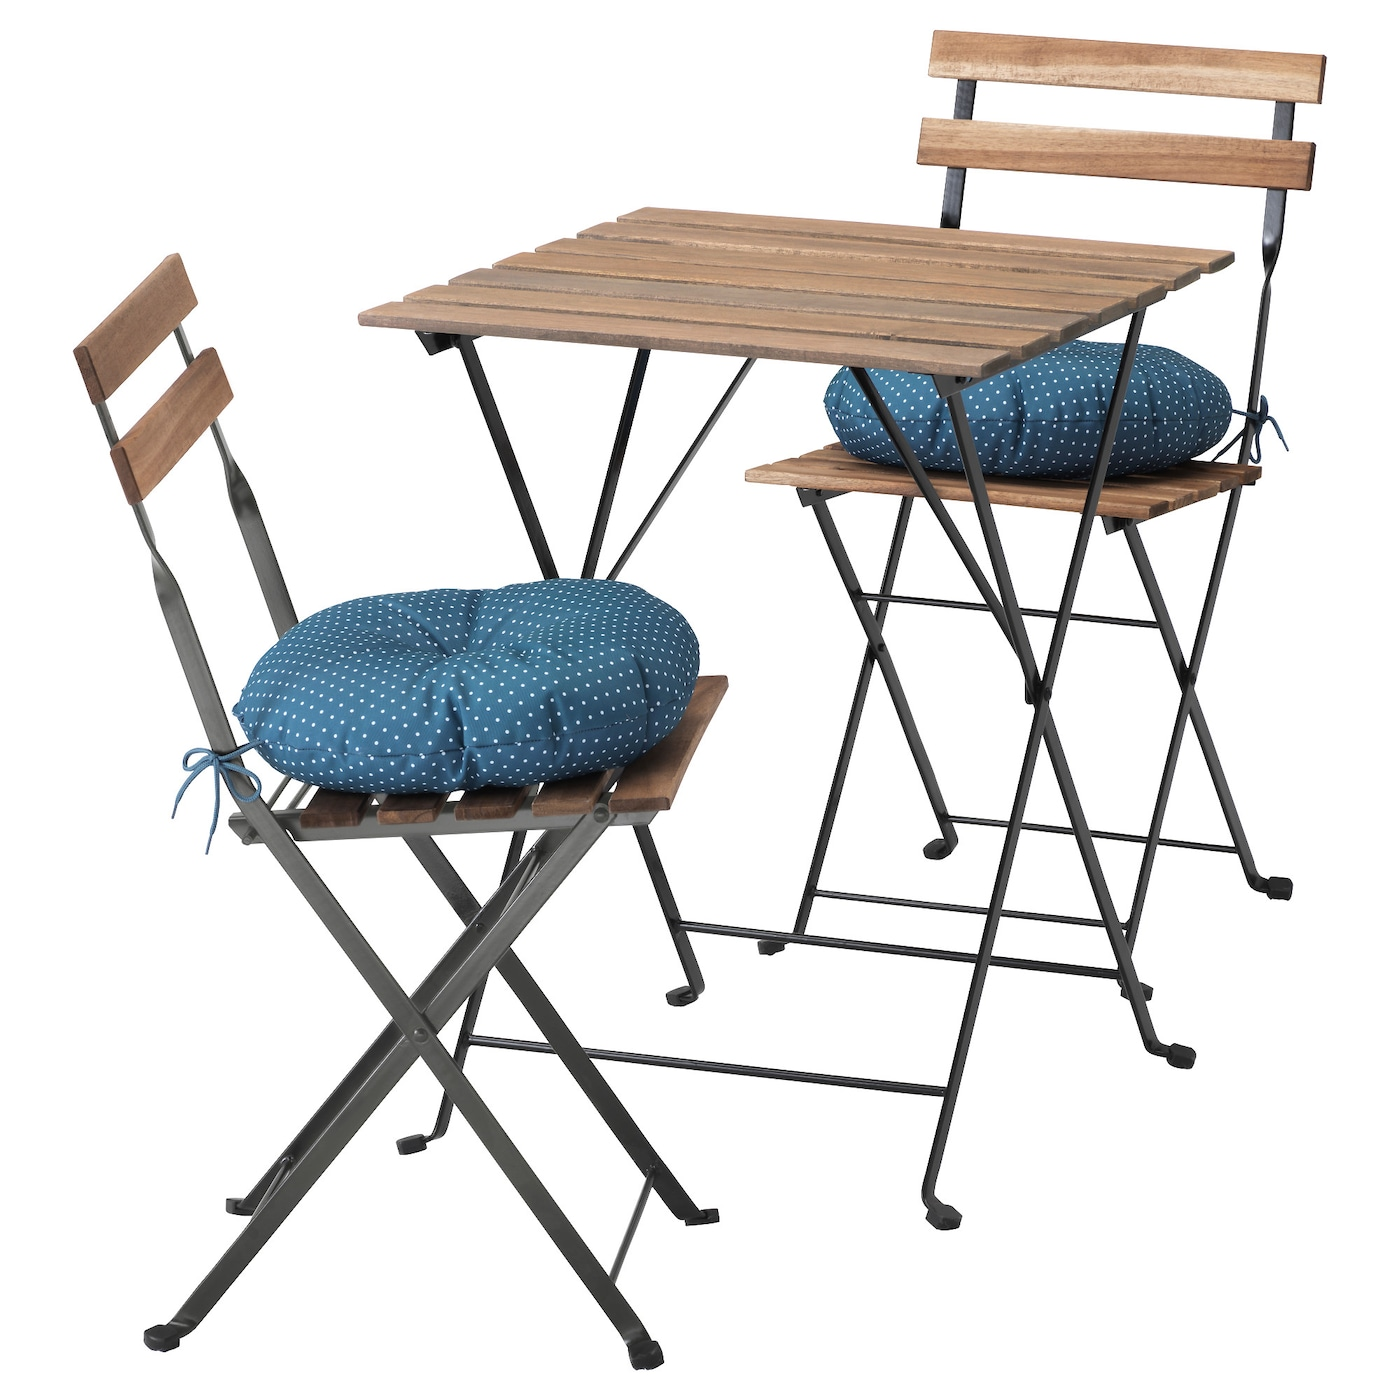 t rn table 2 chairs outdoor black brown stained ytter n blue ikea. Black Bedroom Furniture Sets. Home Design Ideas